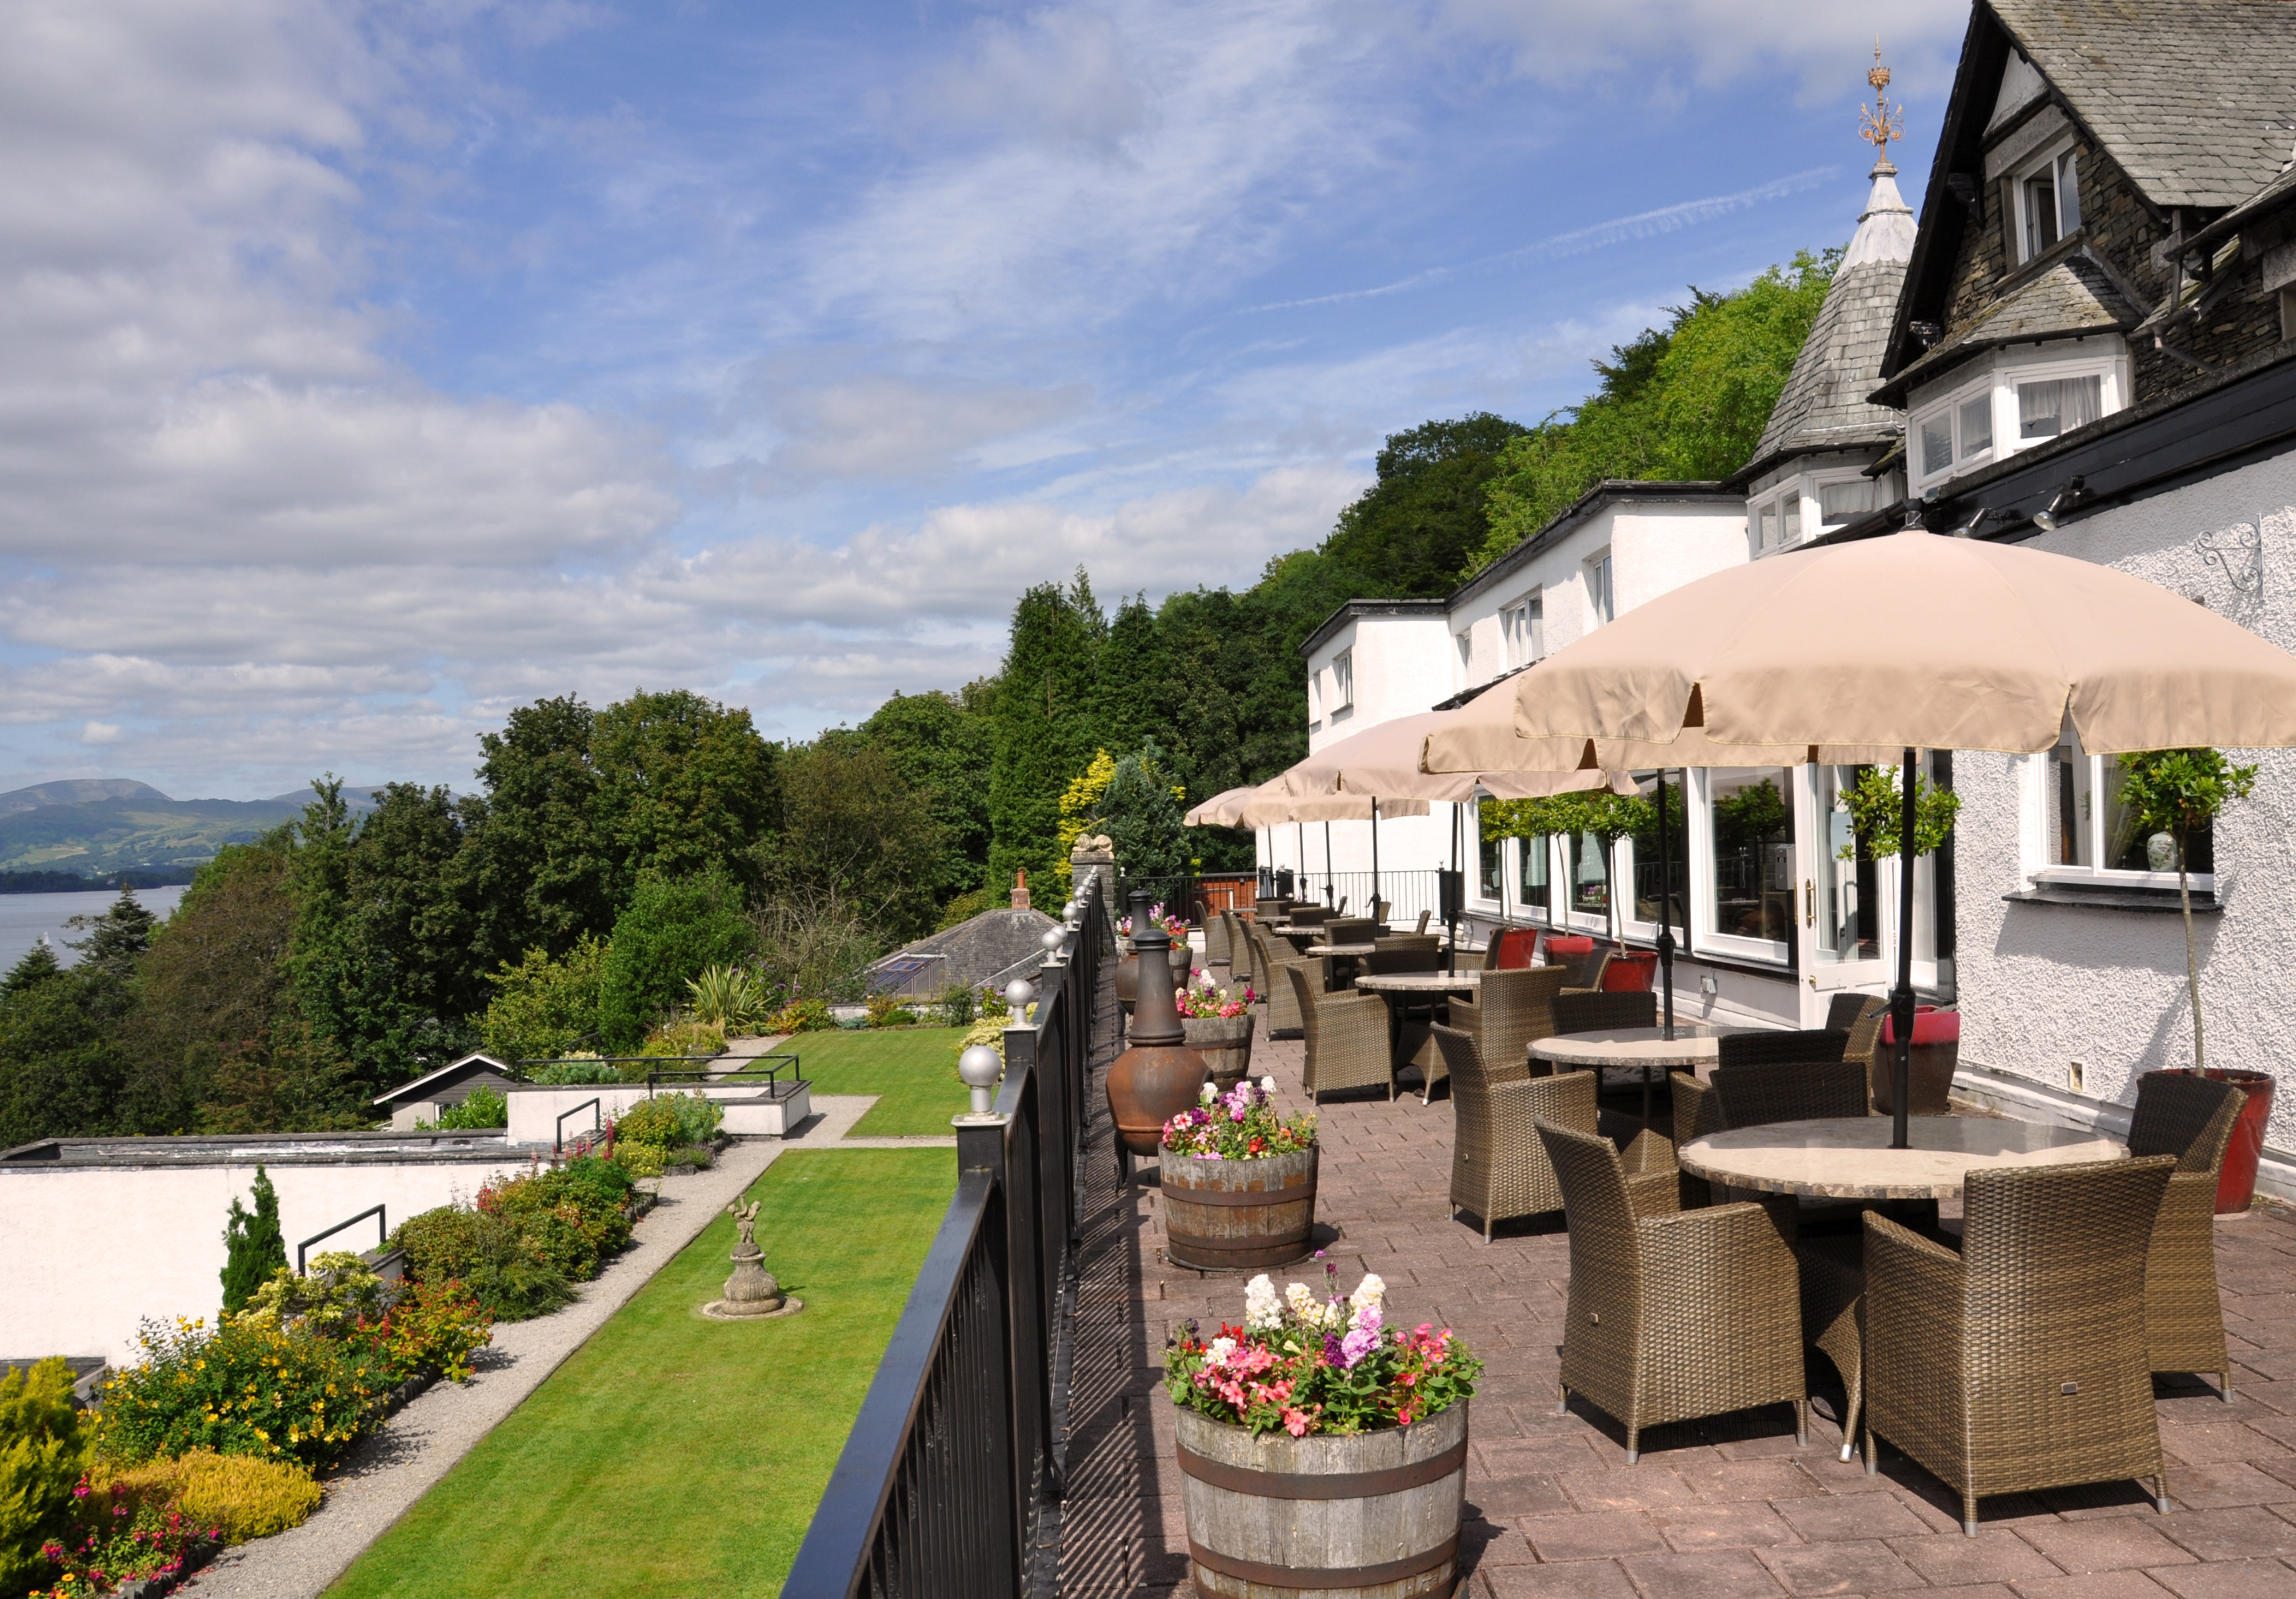 Beech Hill Hotel Terrace